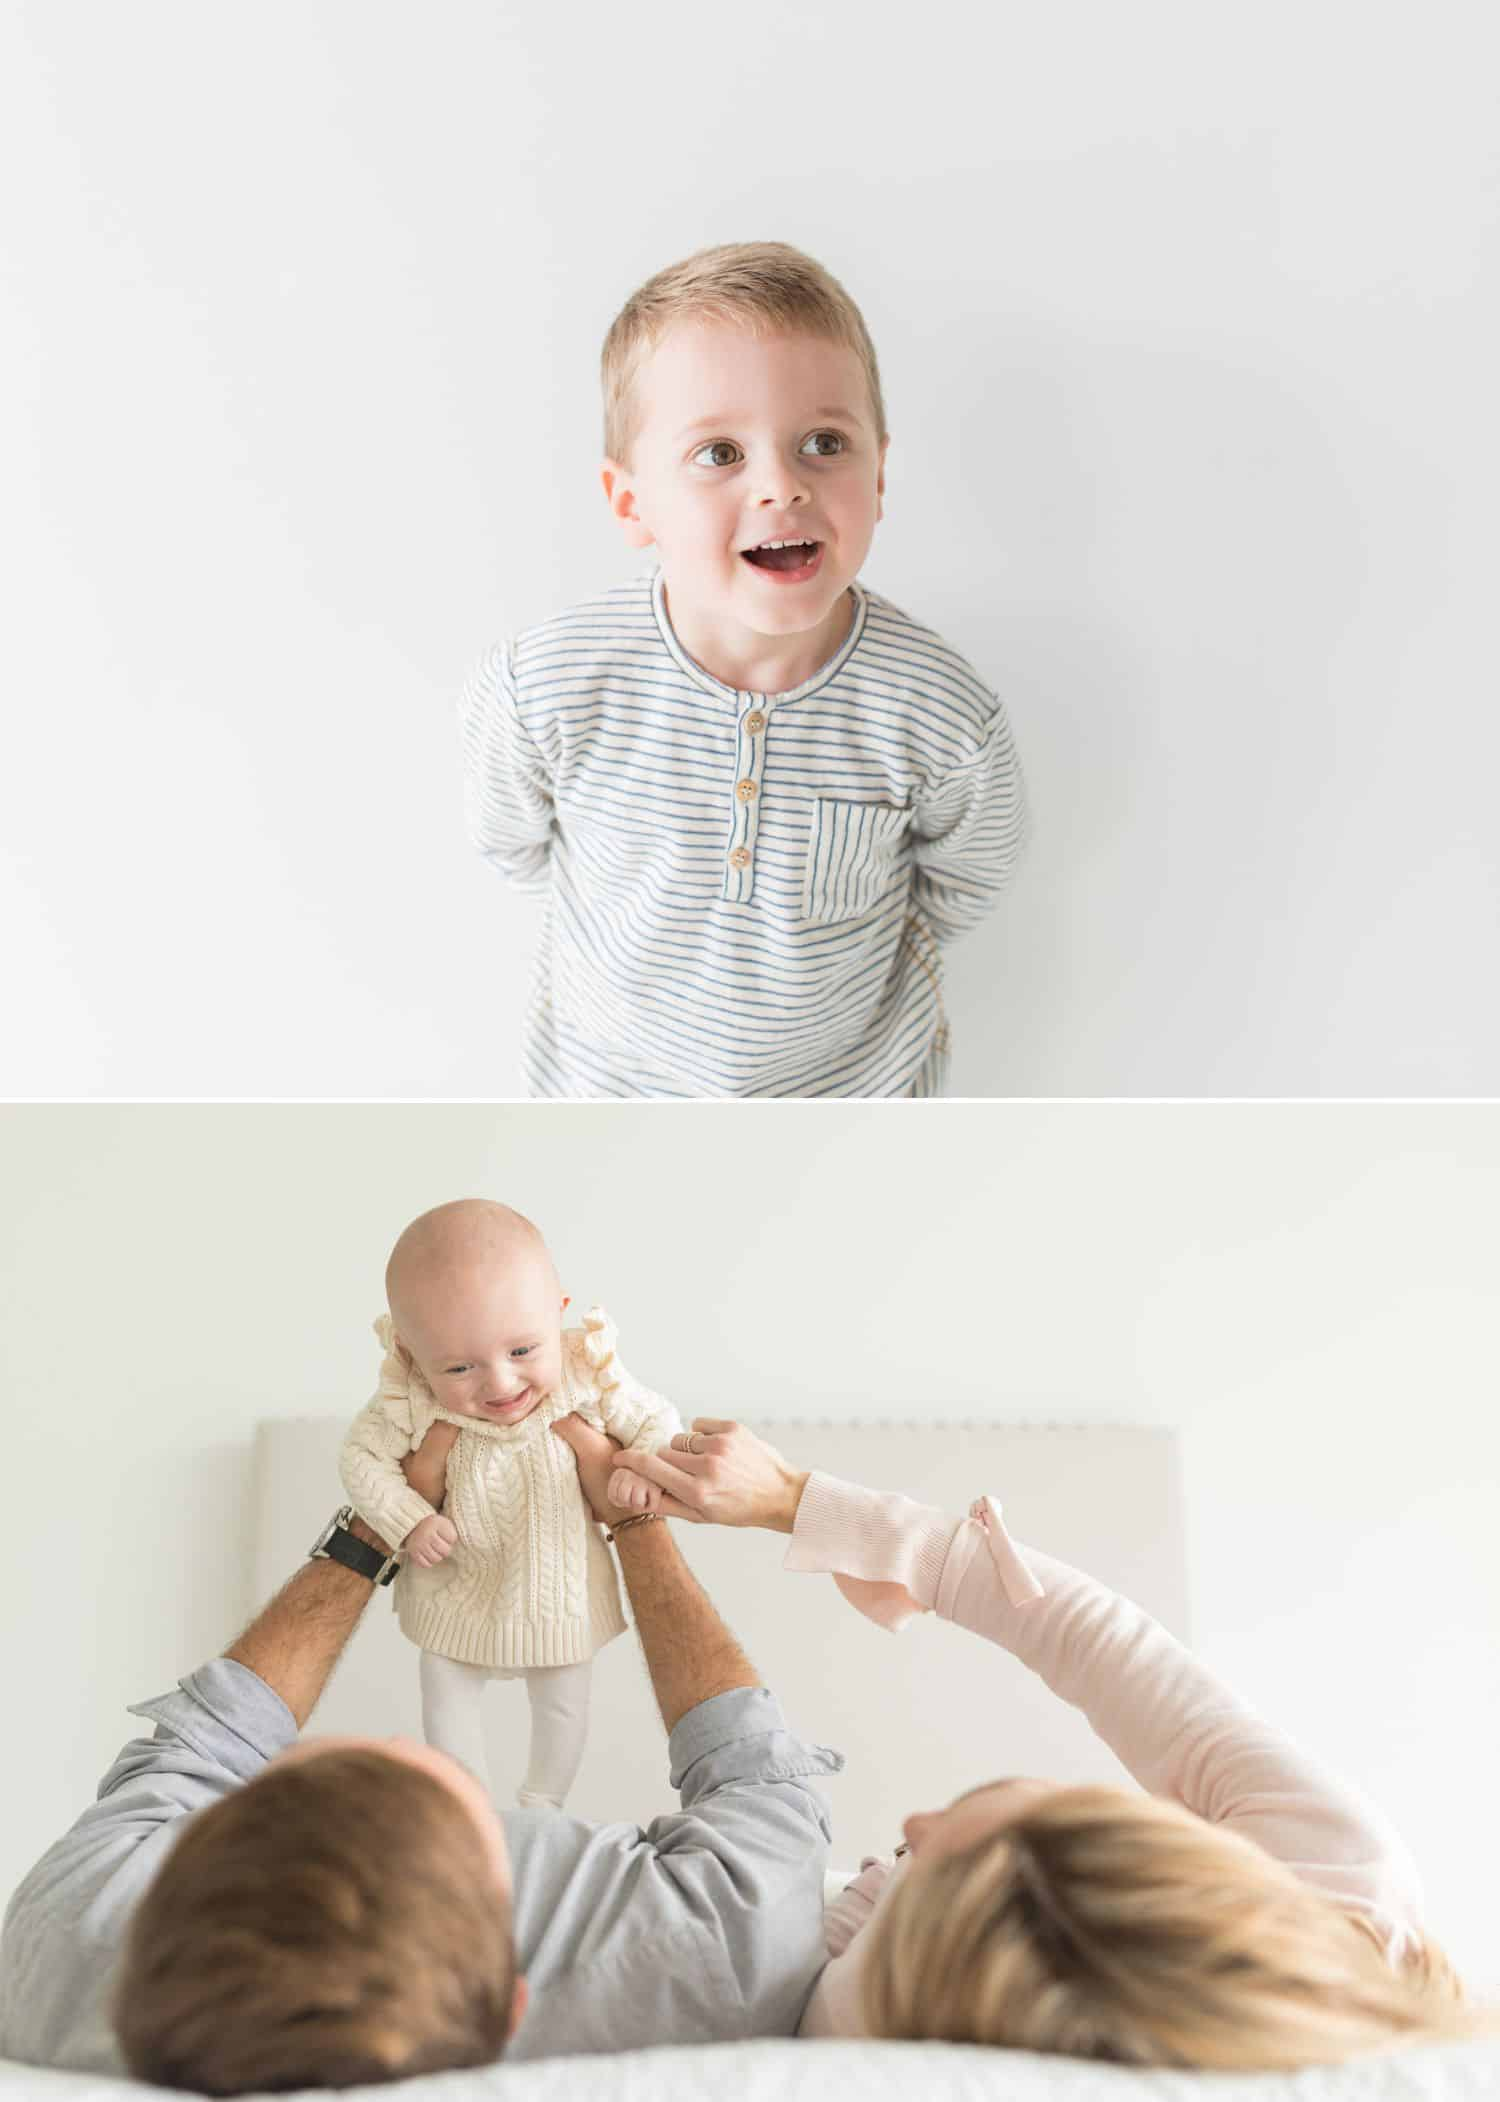 How To Get More Photography Clients? Start Saying No! - Clean and bright family photographs by Jenny Perry.